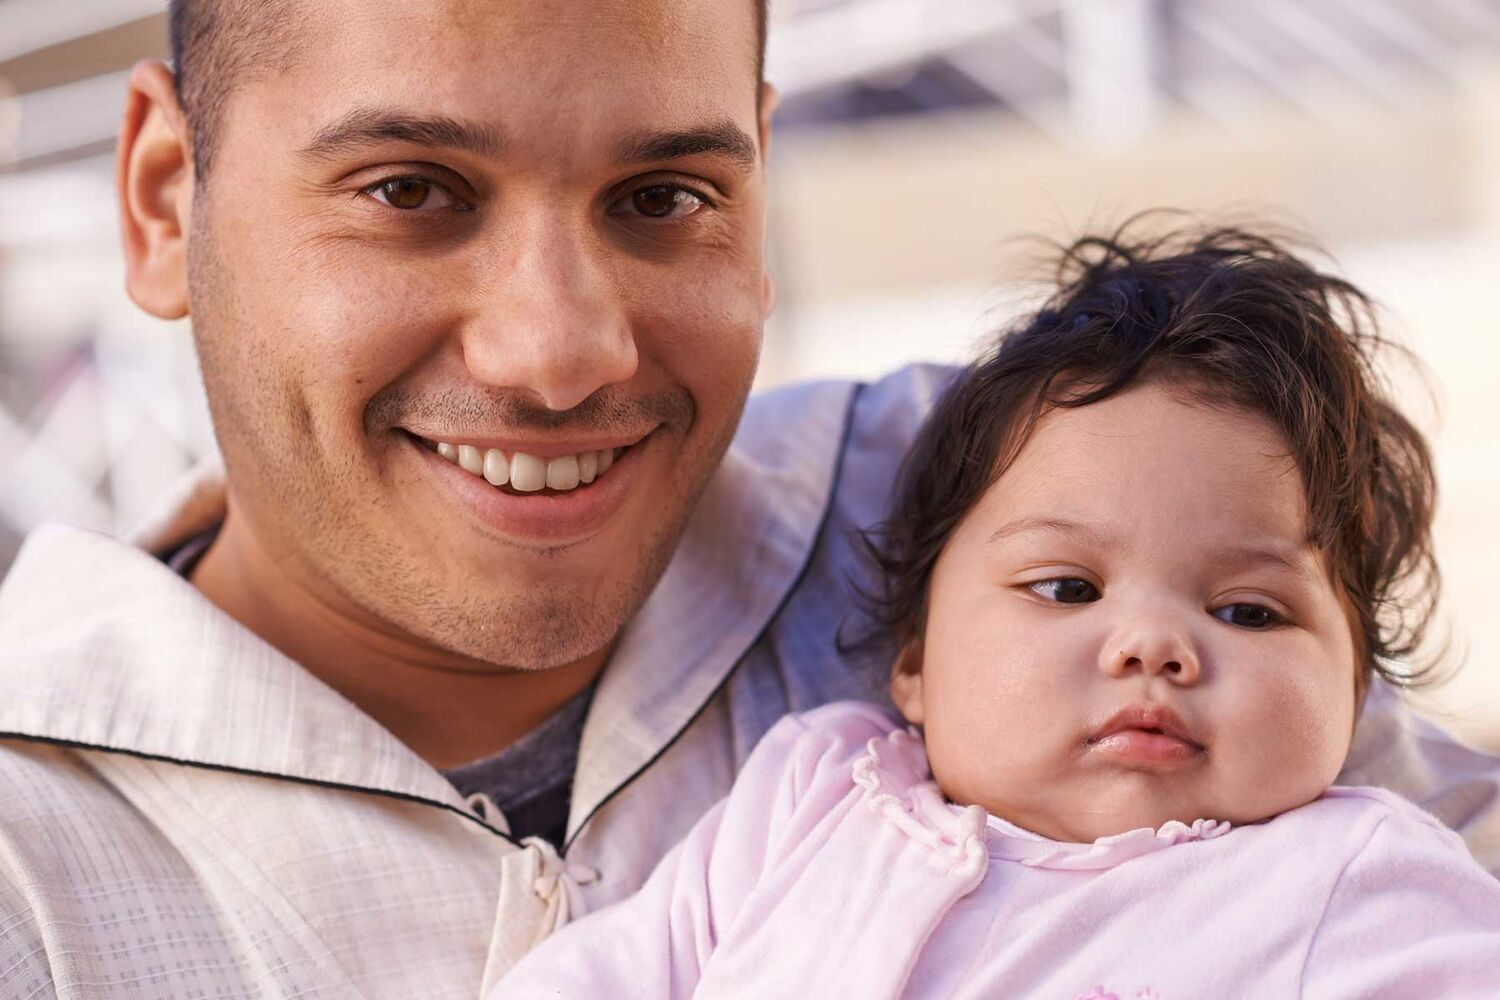 Father Holding Baby Girl With Chubby Cheeks Smiling Into Camera